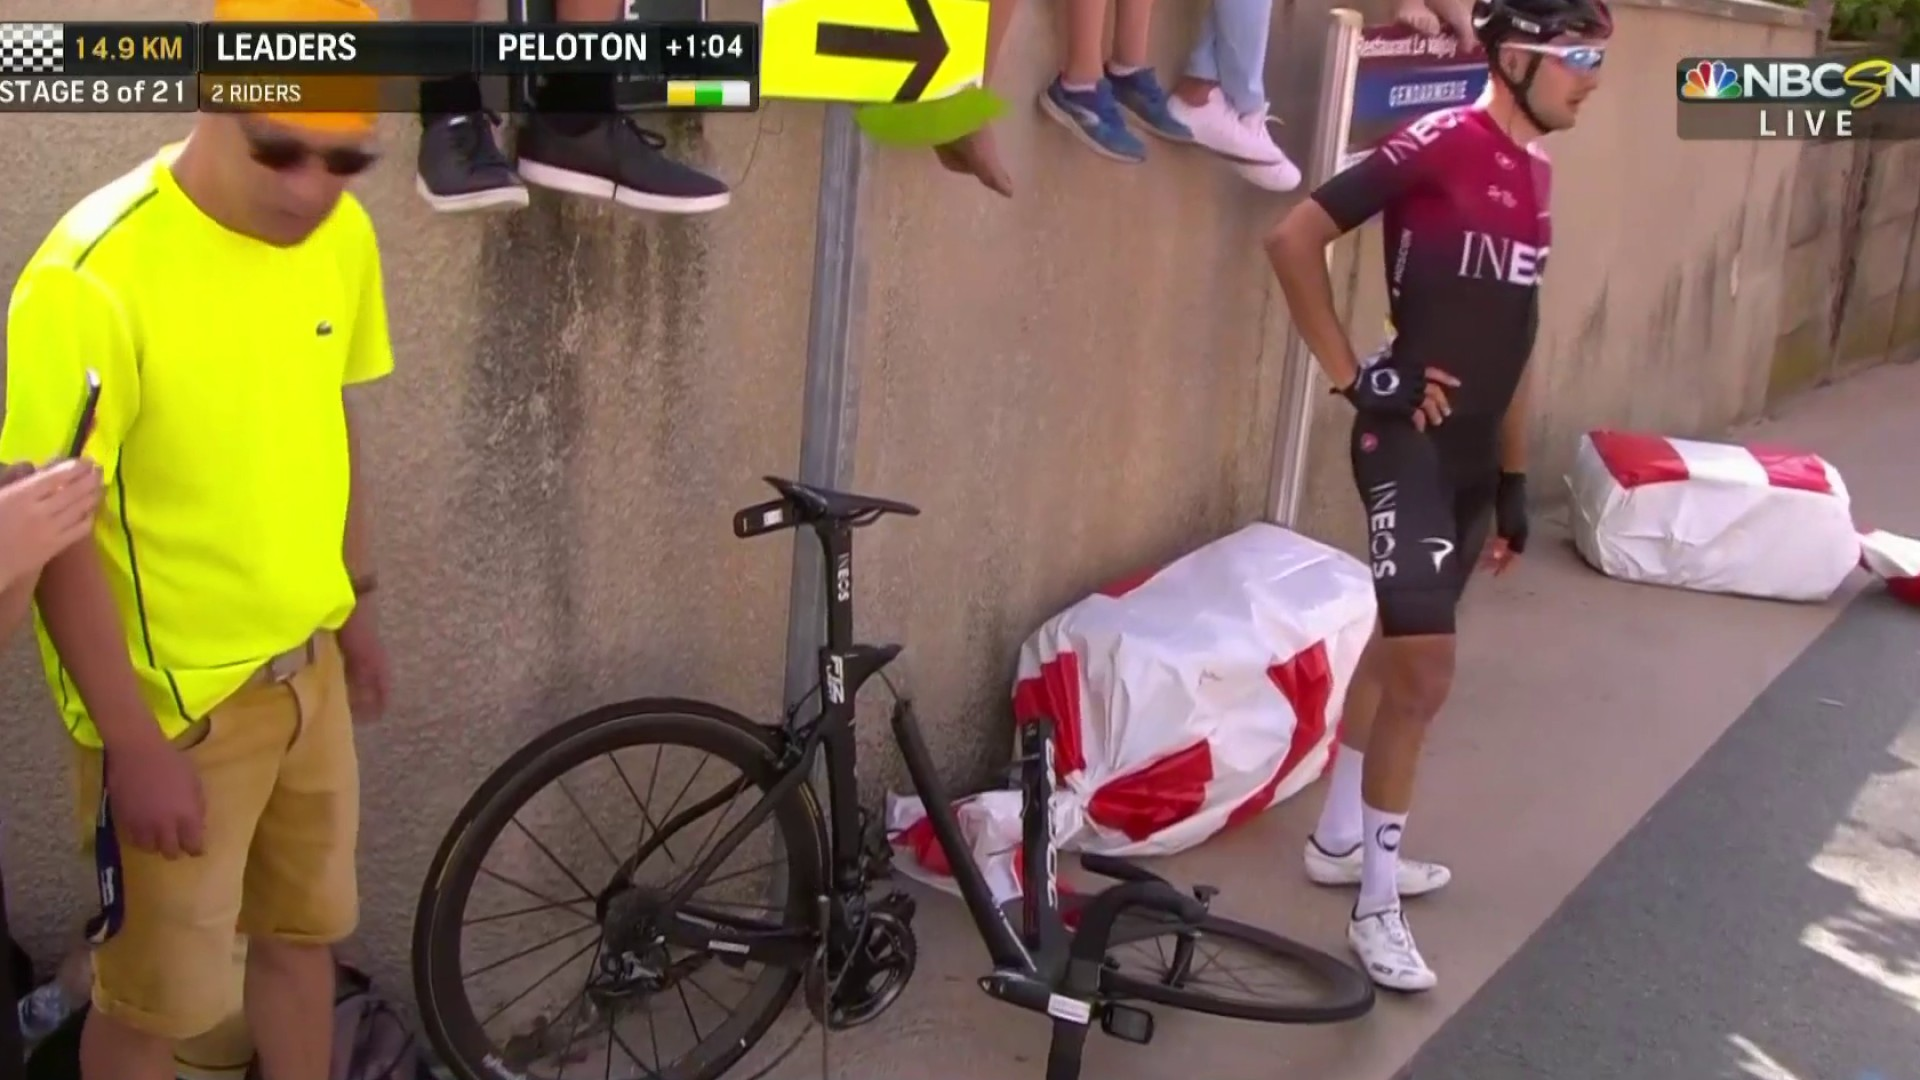 2019 Tour de France: Team INEOS crashes in Stage 8 | NBC Sports